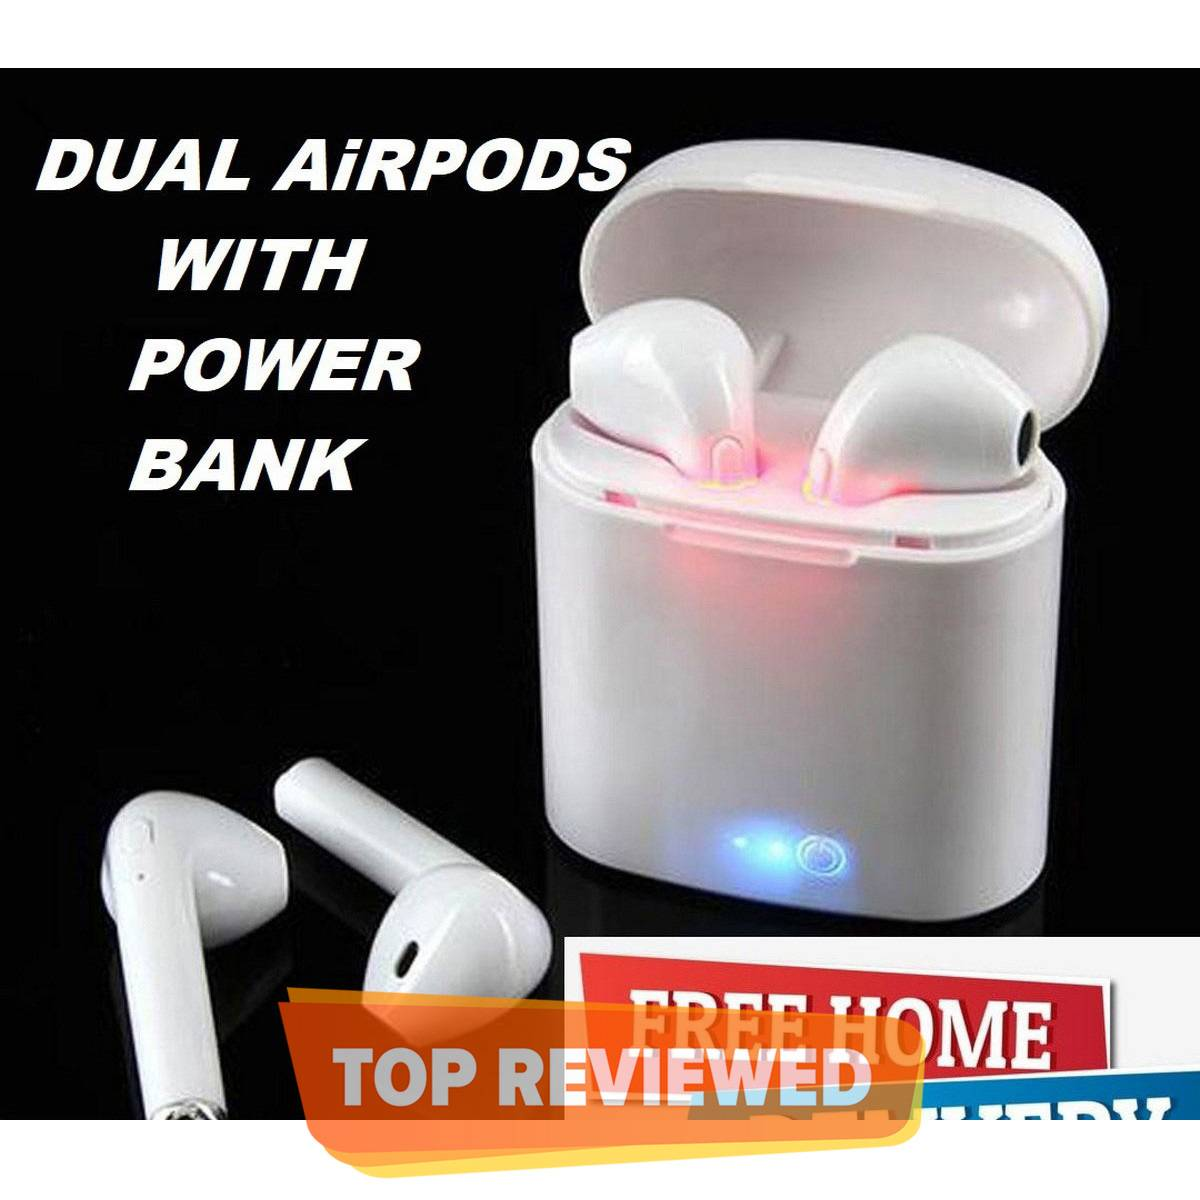 I7s TWS Wireless Earbuds Bluetooth Handsfree For Iphones Android Devices